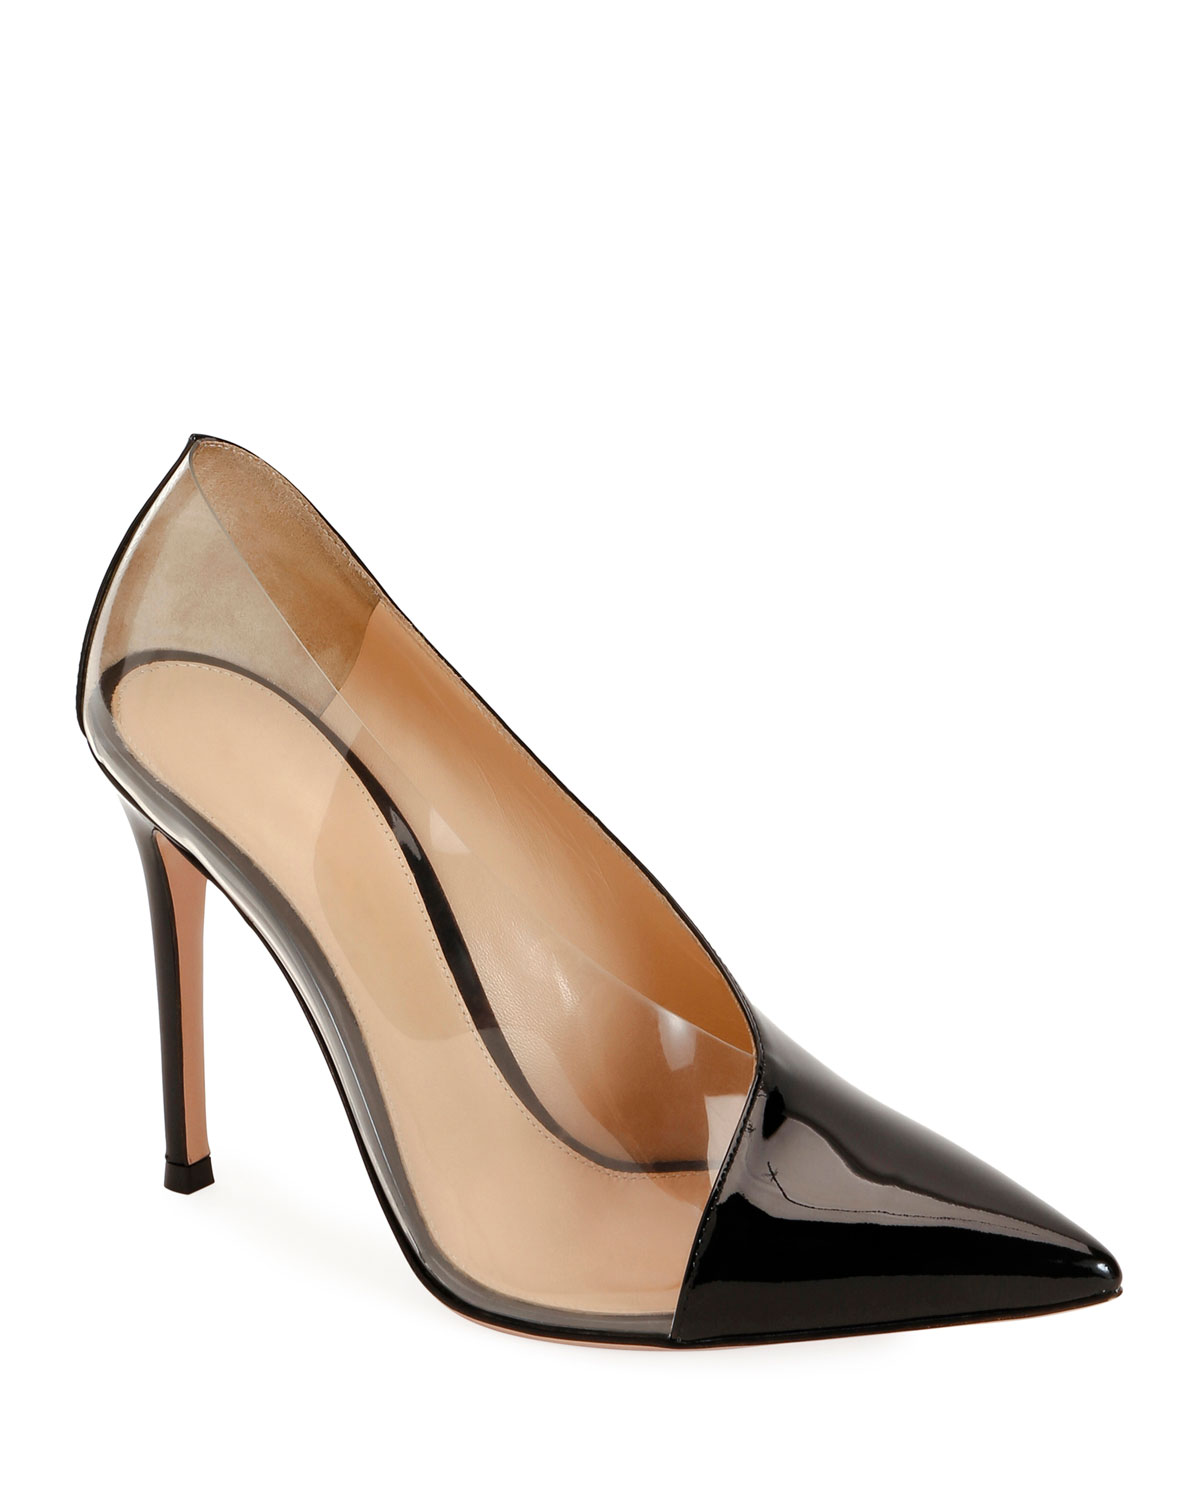 Plexi Patent Clear-Sided Pumps